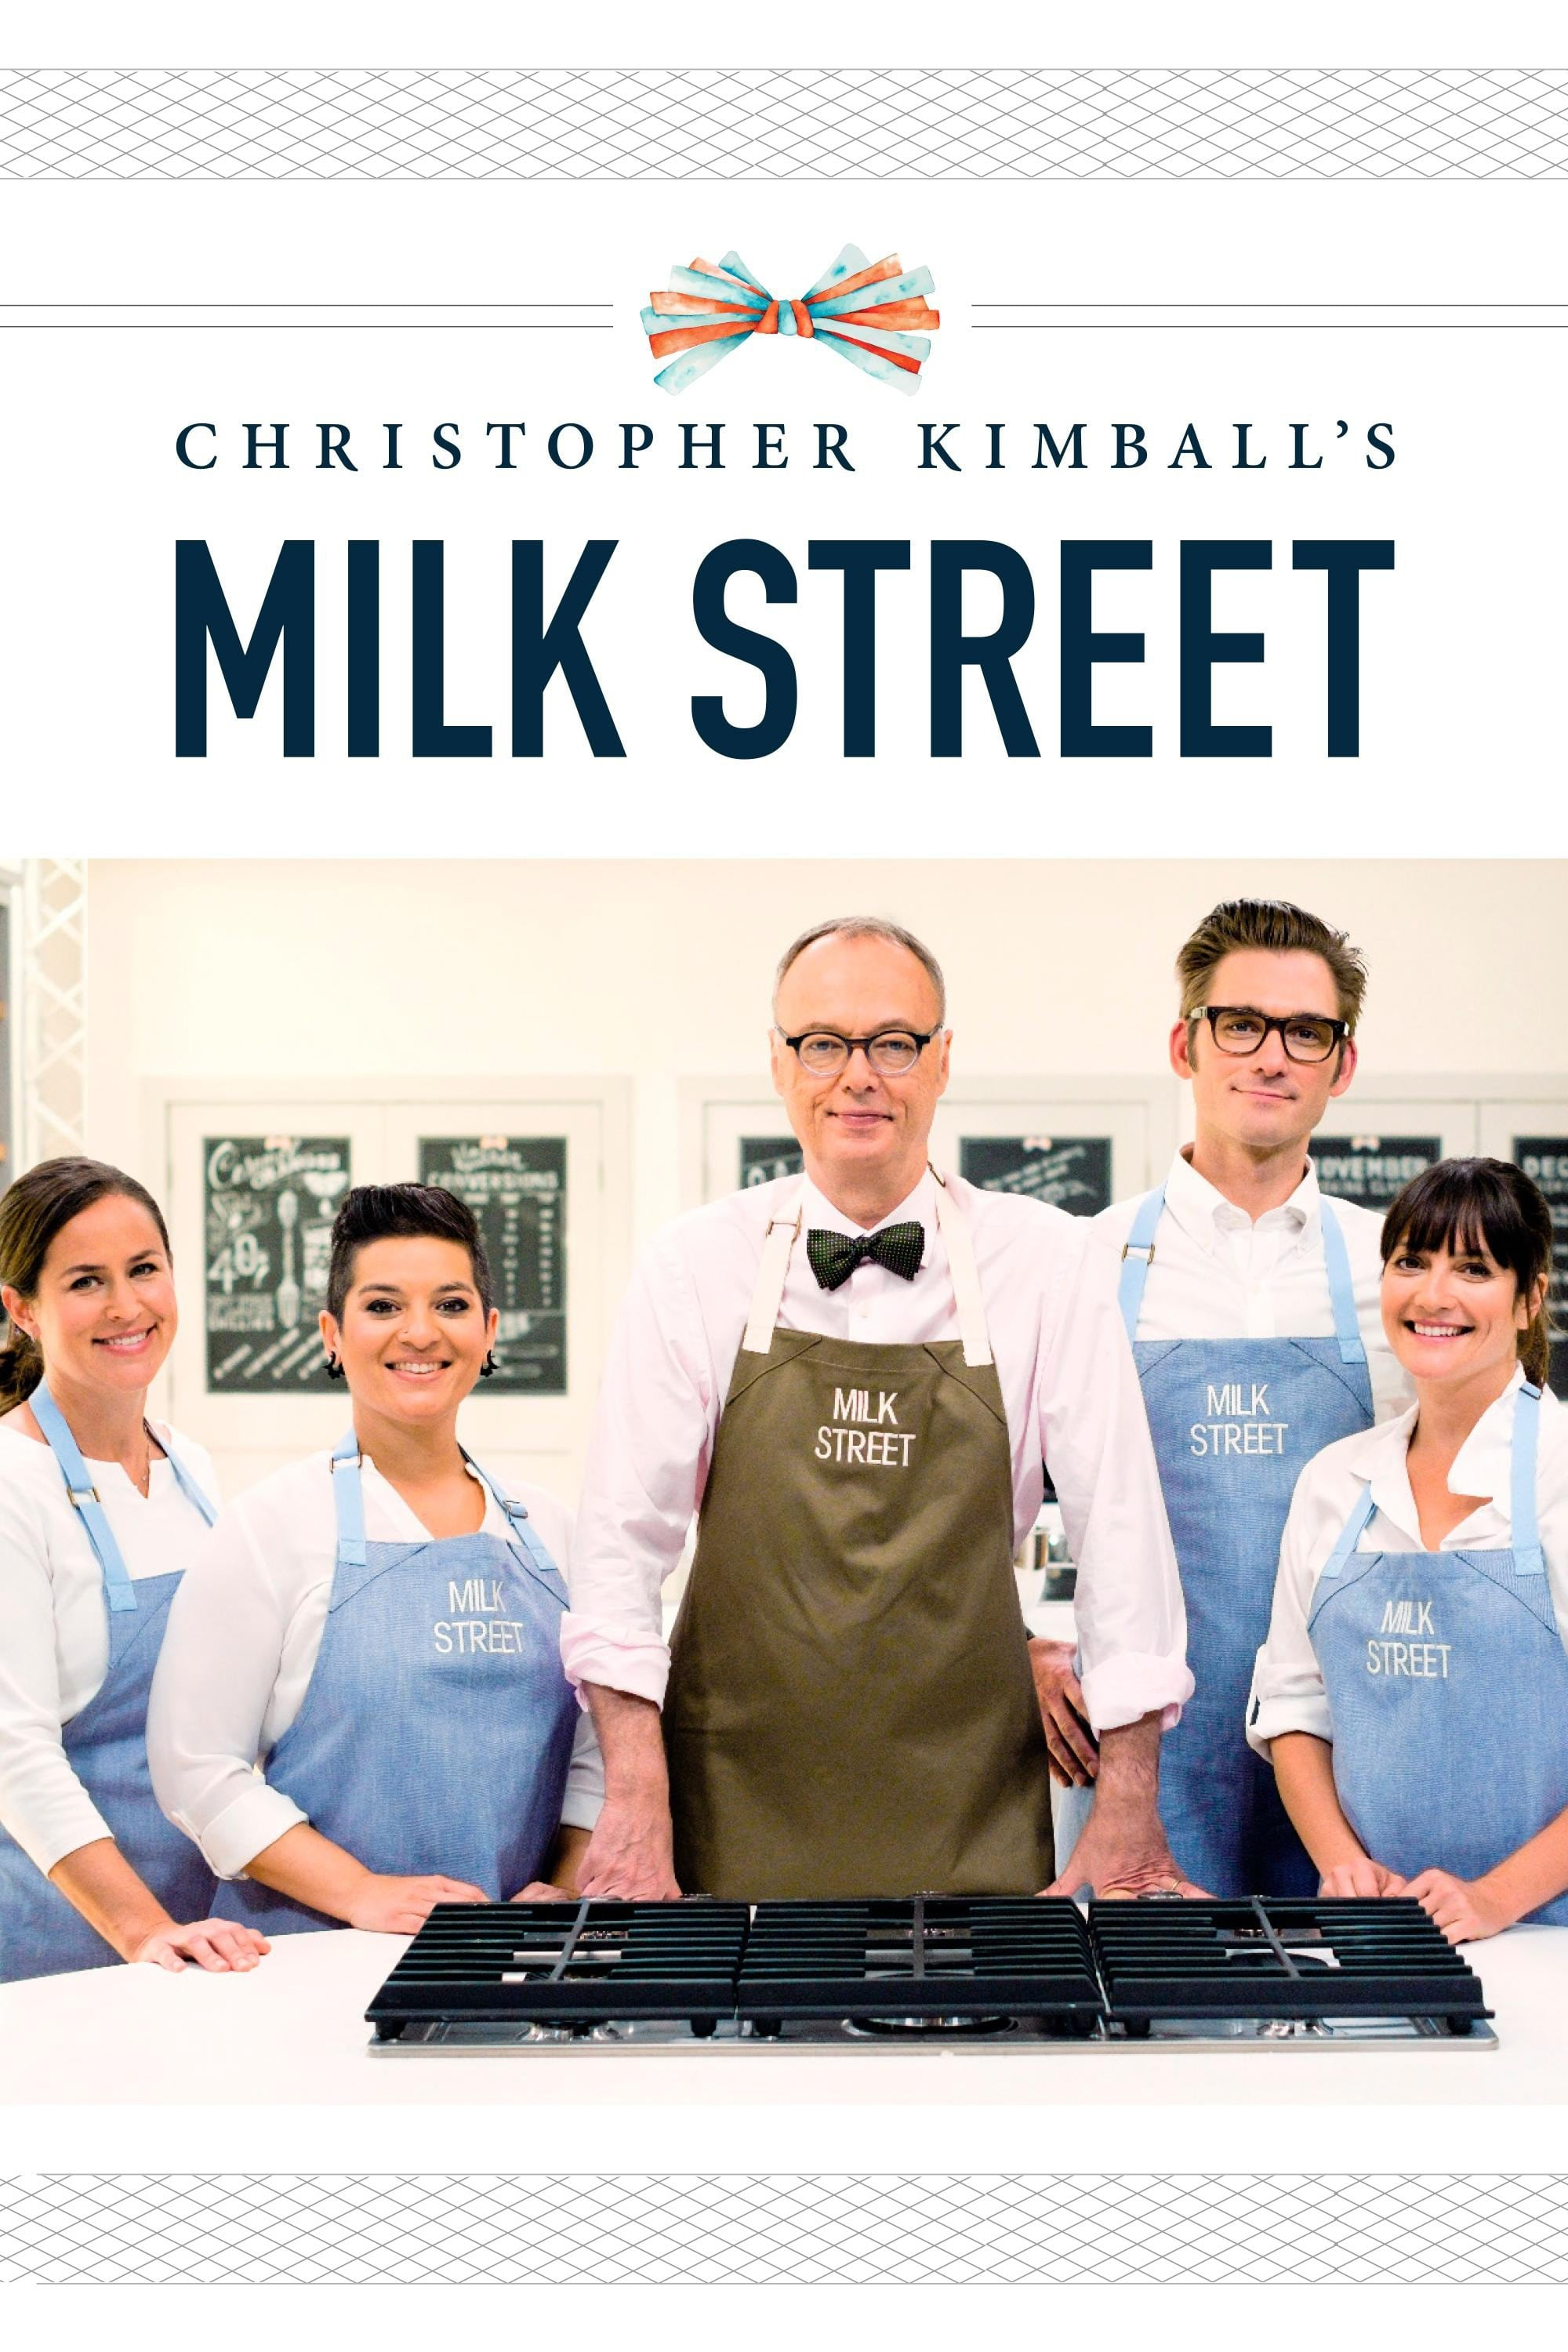 Christopher Kimball's Milk Street Television TV Shows About Baking